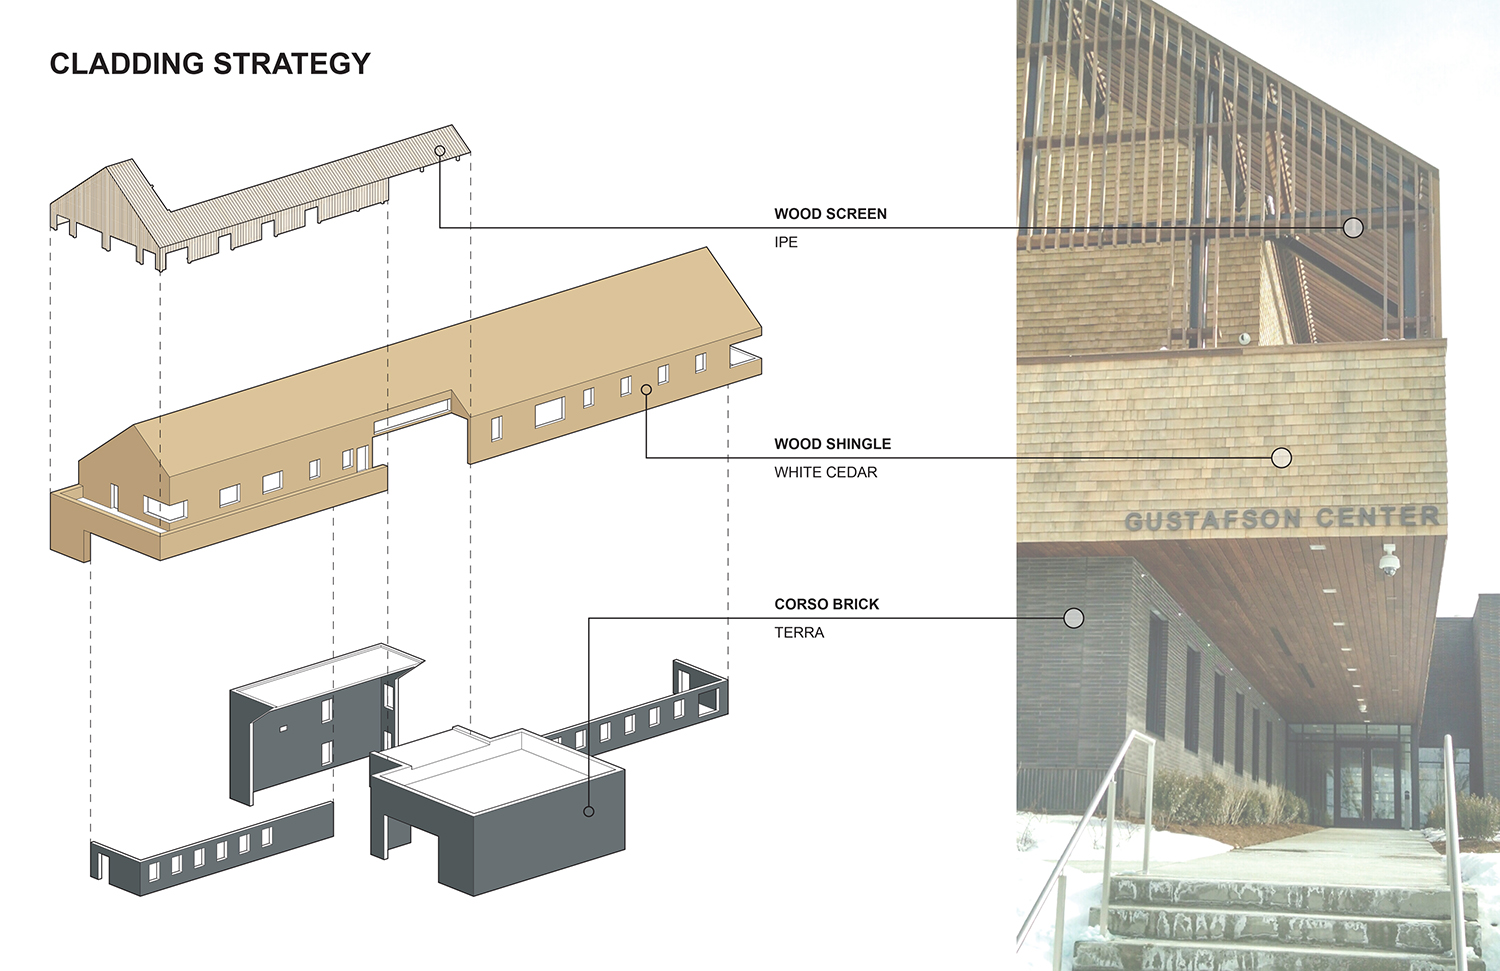 03-Gustafson-Cladding Strategy.jpg